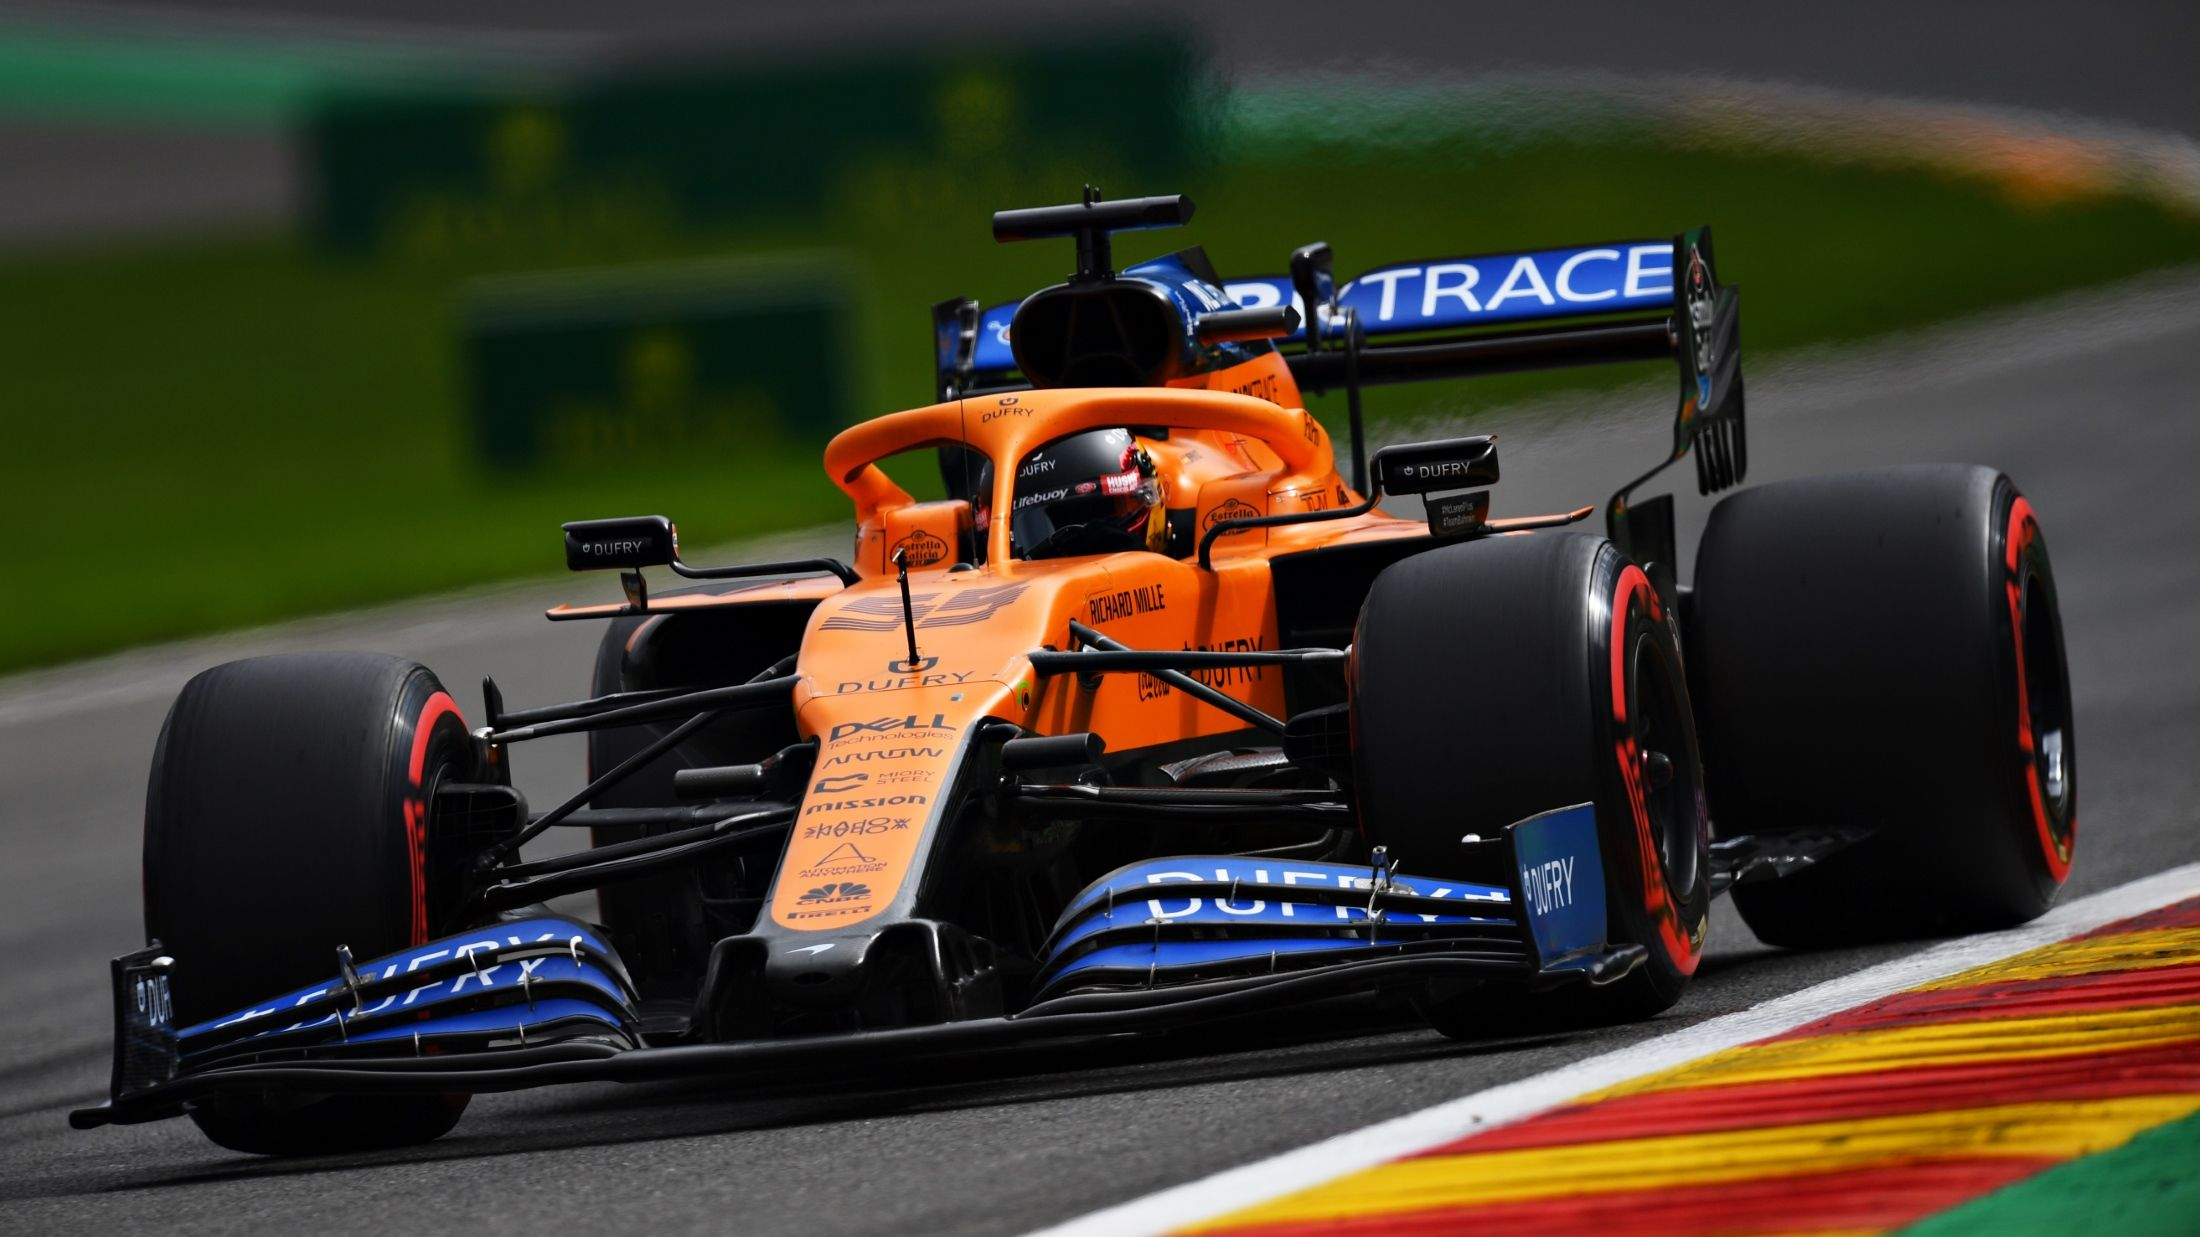 Carlos Sainz S Belgian Grand Prix Over Before It Starts After Exhaust Failure On Lap To Grid Formula 1 Grand Prix Cars Belgian Grand Prix Grand Prix